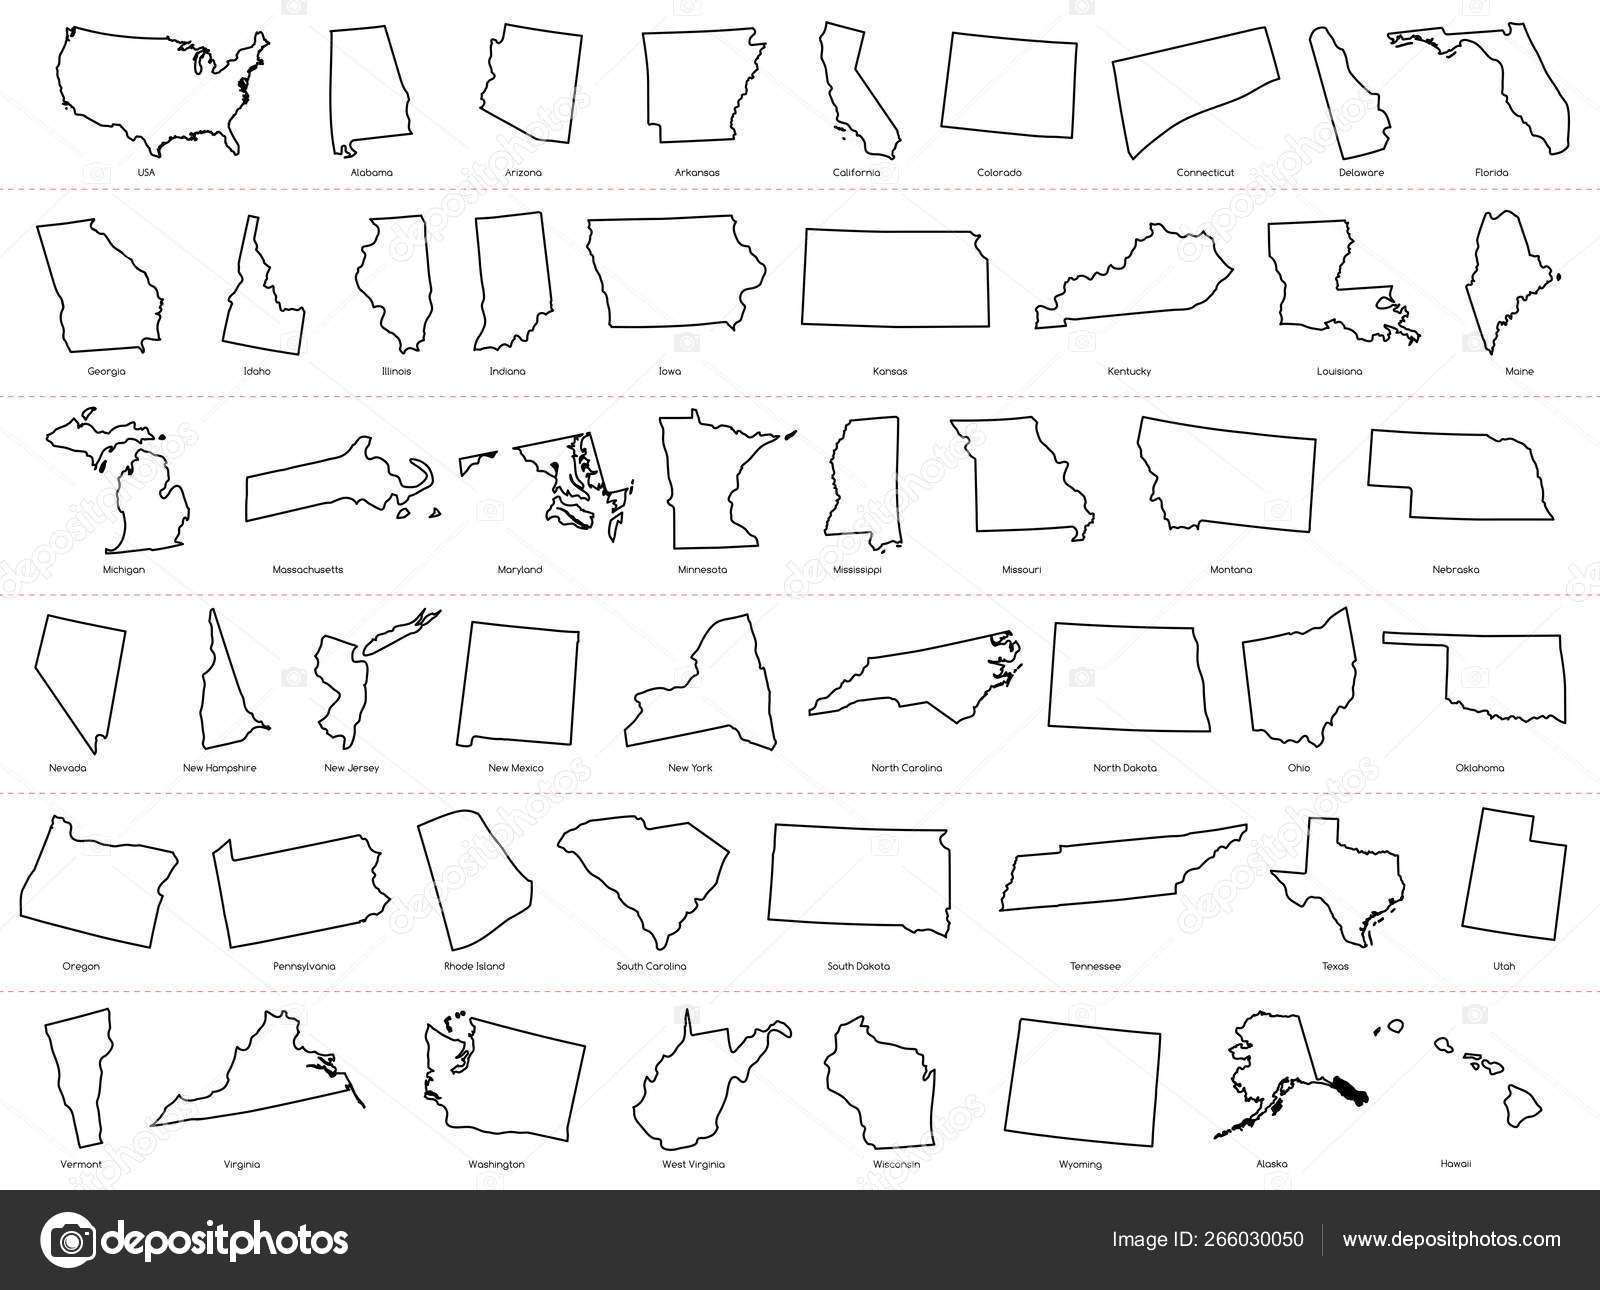 America map outline with states | Map of The United States ...